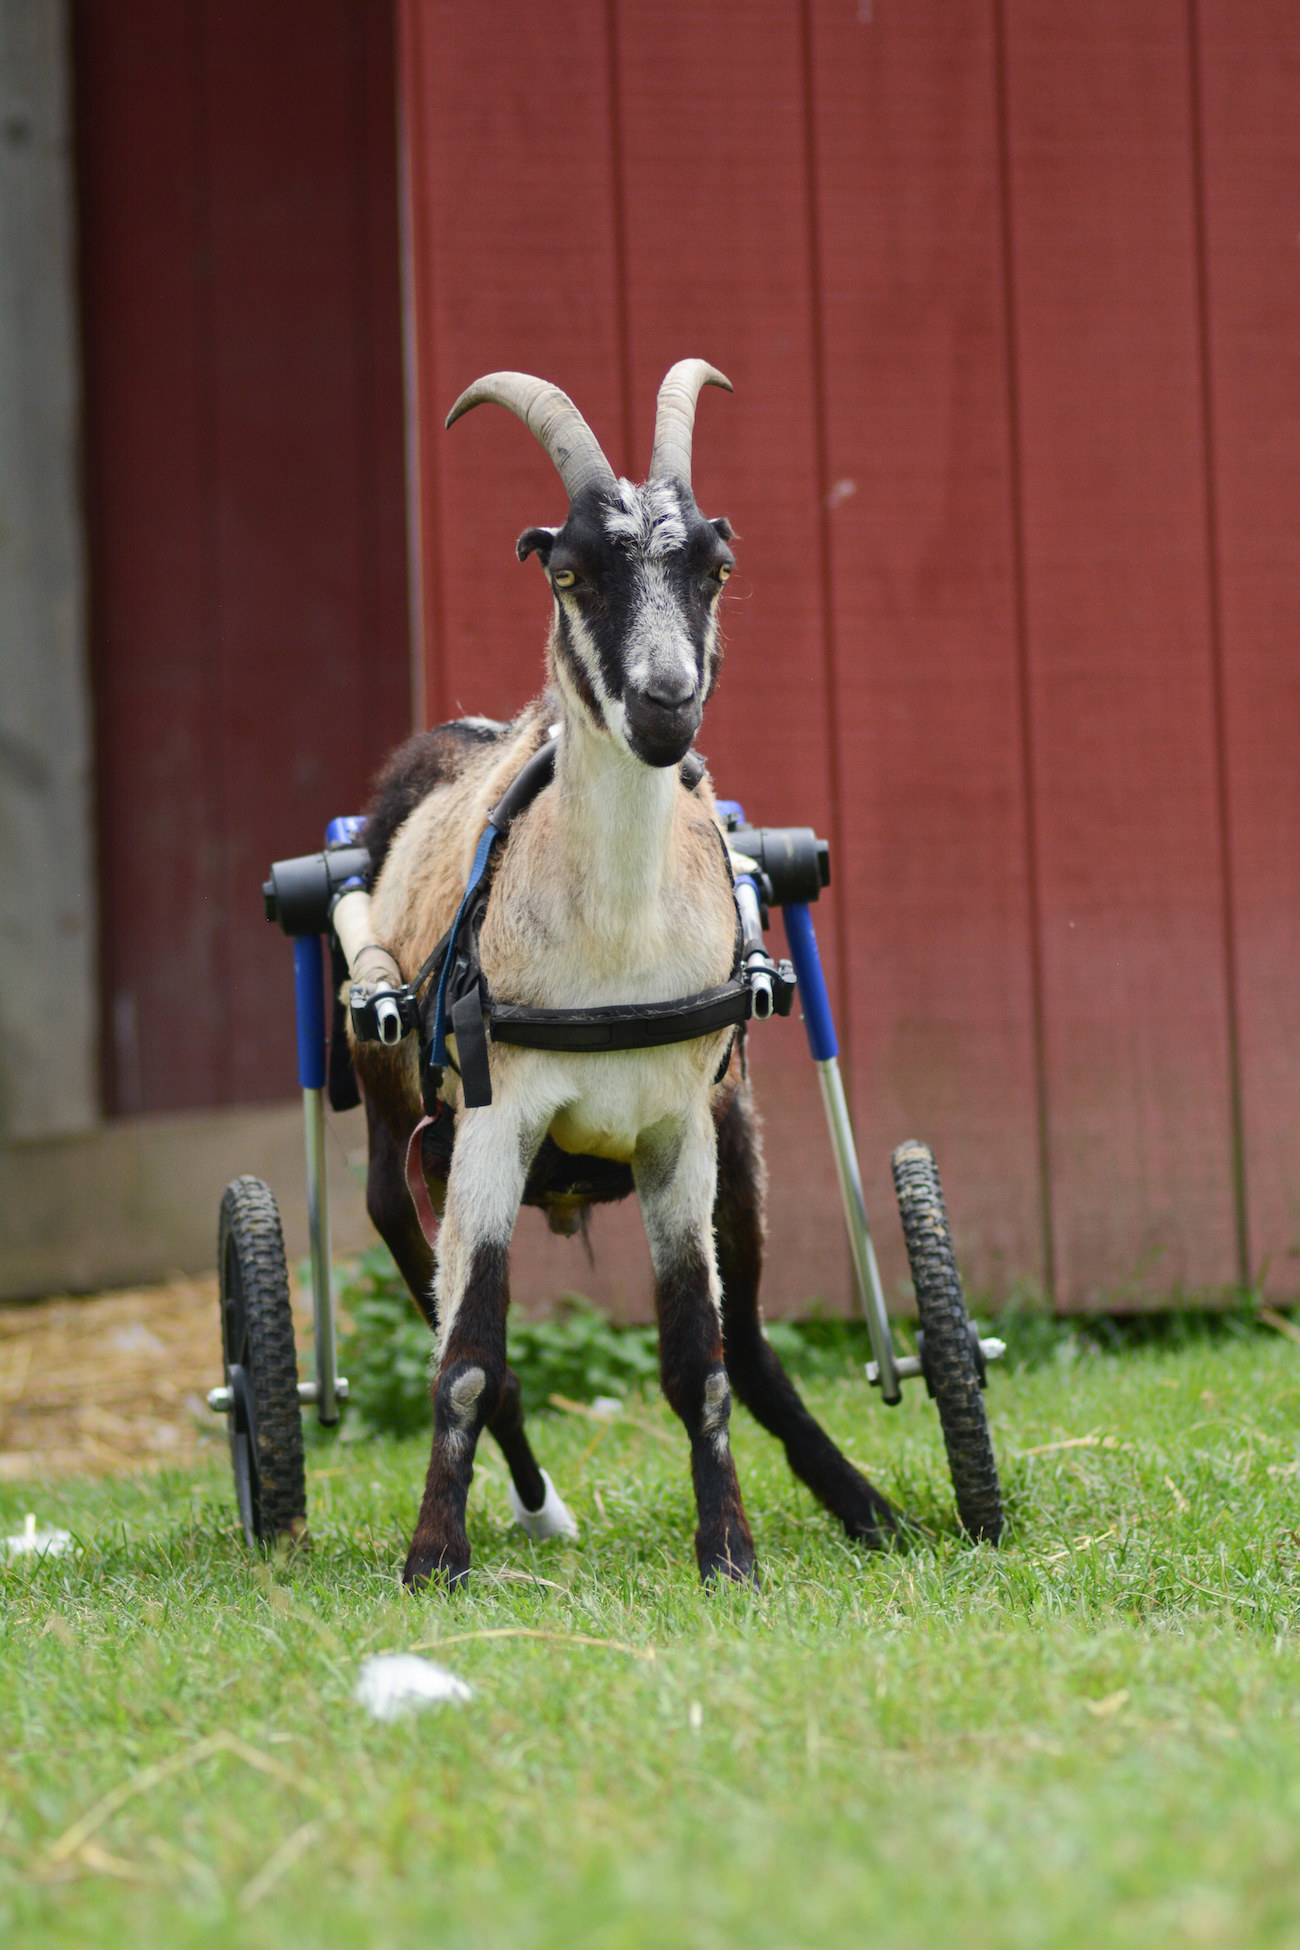 a goat in a wheelchair